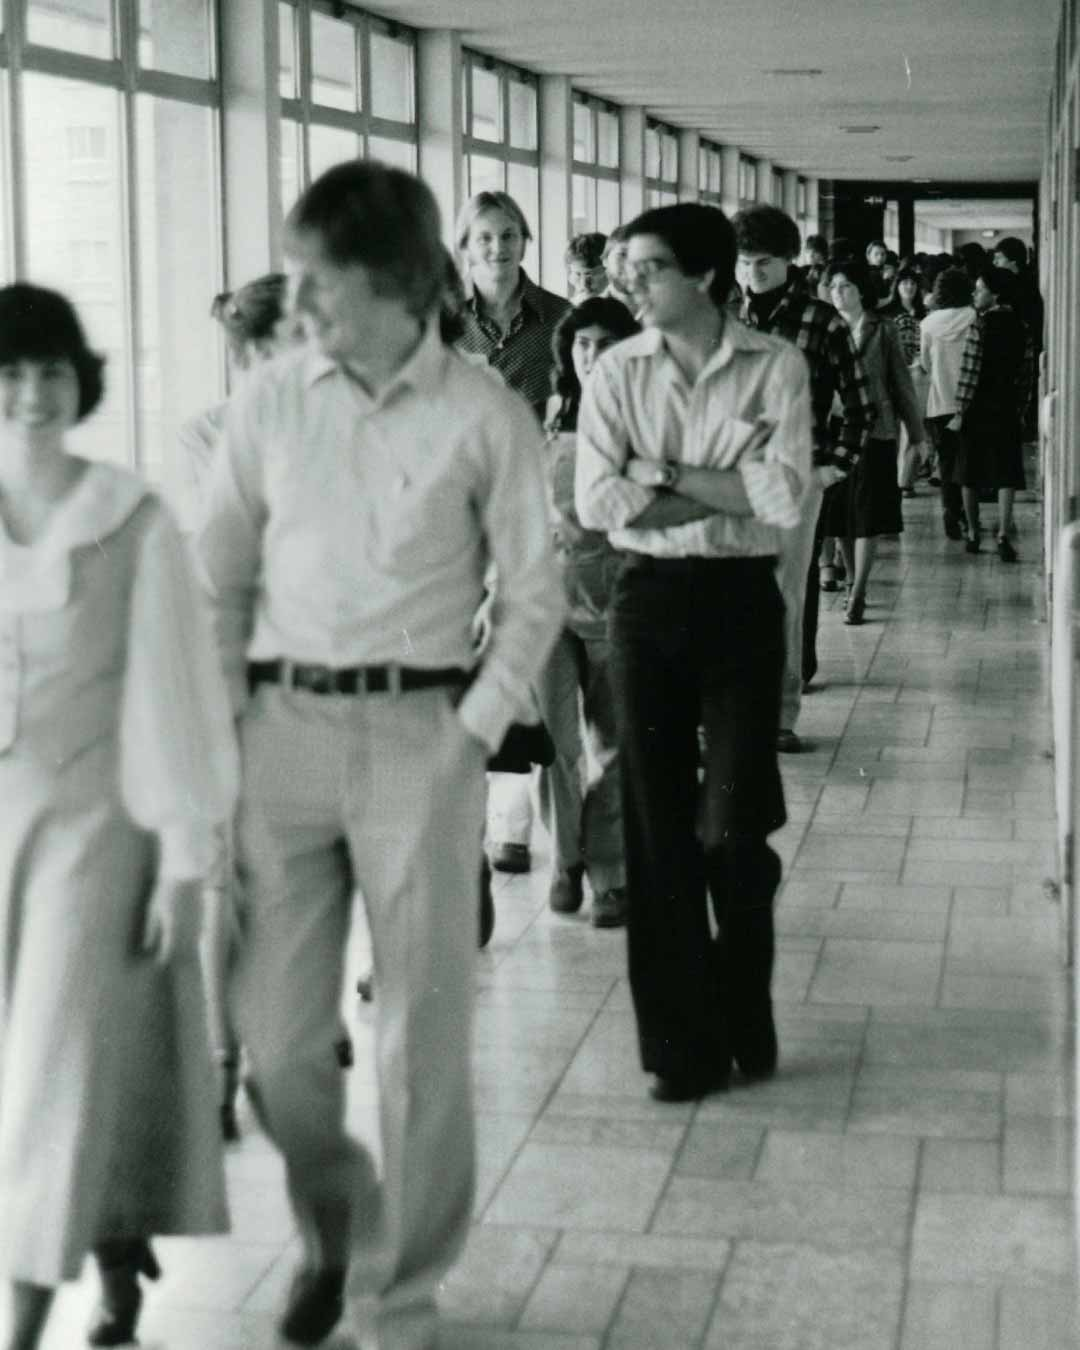 old photos of students lobby extensions in crown college